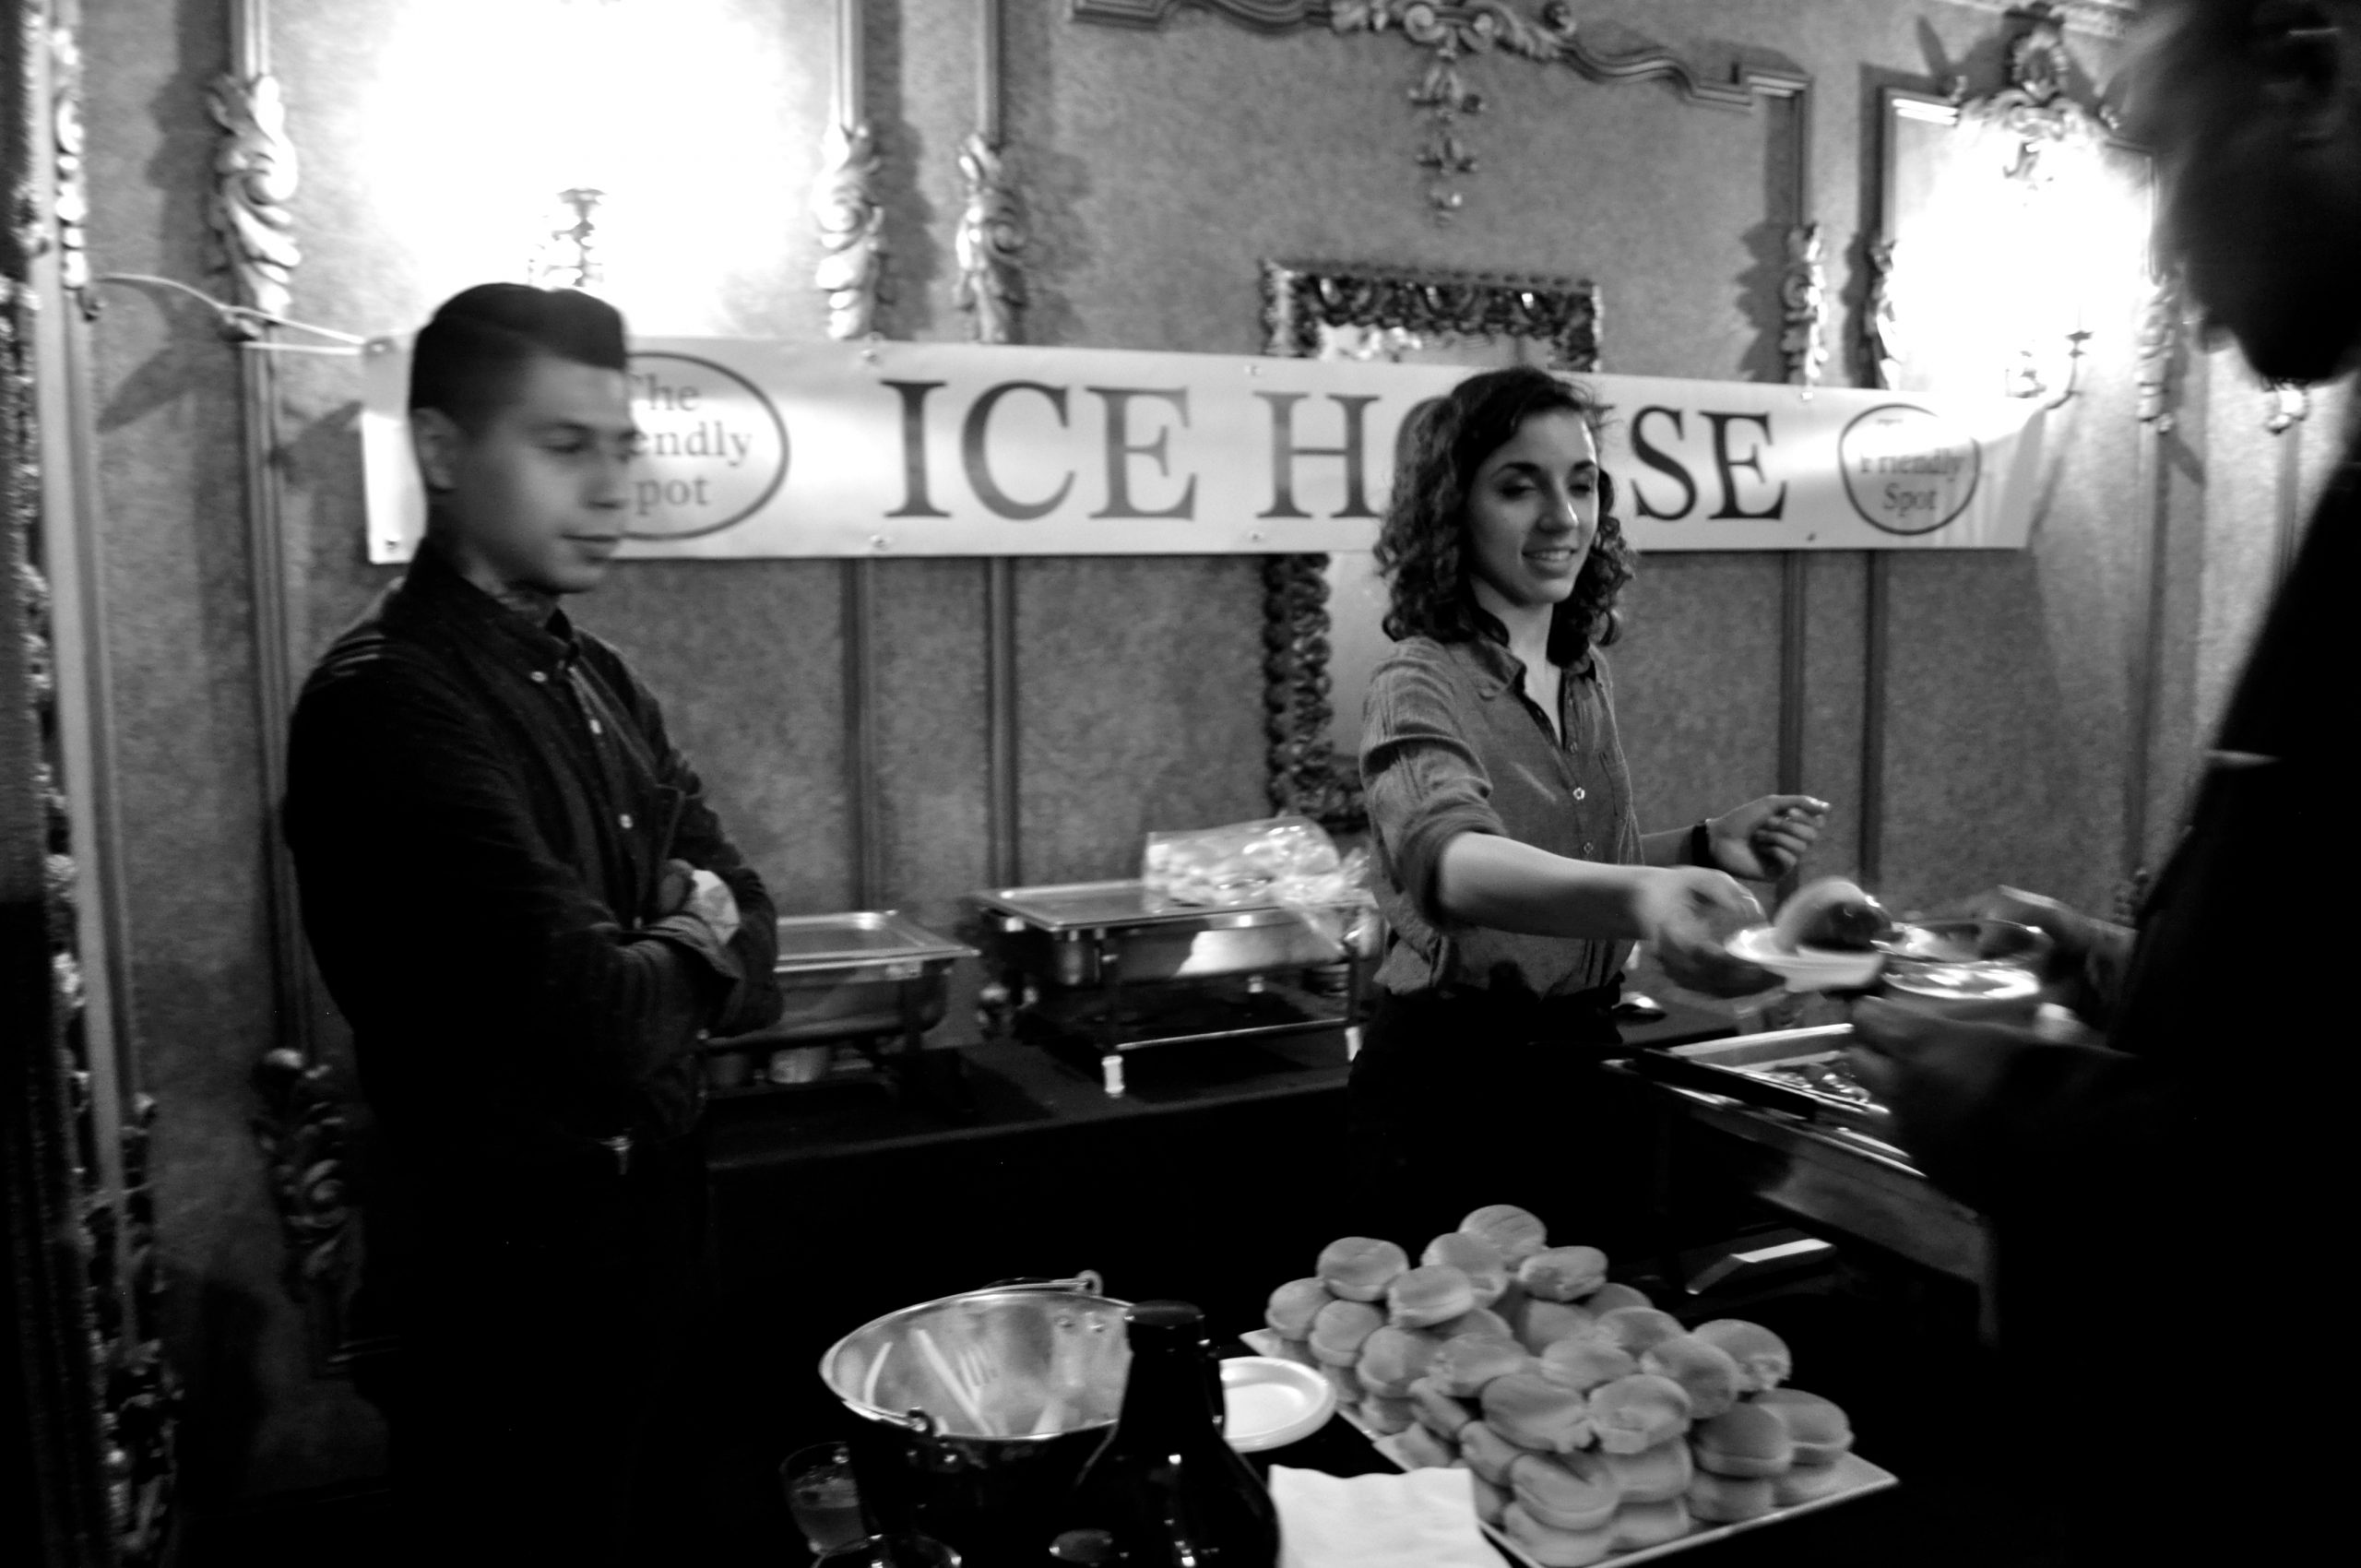 Cisco Garcia (left) and Jessica Rivera serve up meatballs made with Fireman's #4 blonde ale. Photo by Iris Dimmick.